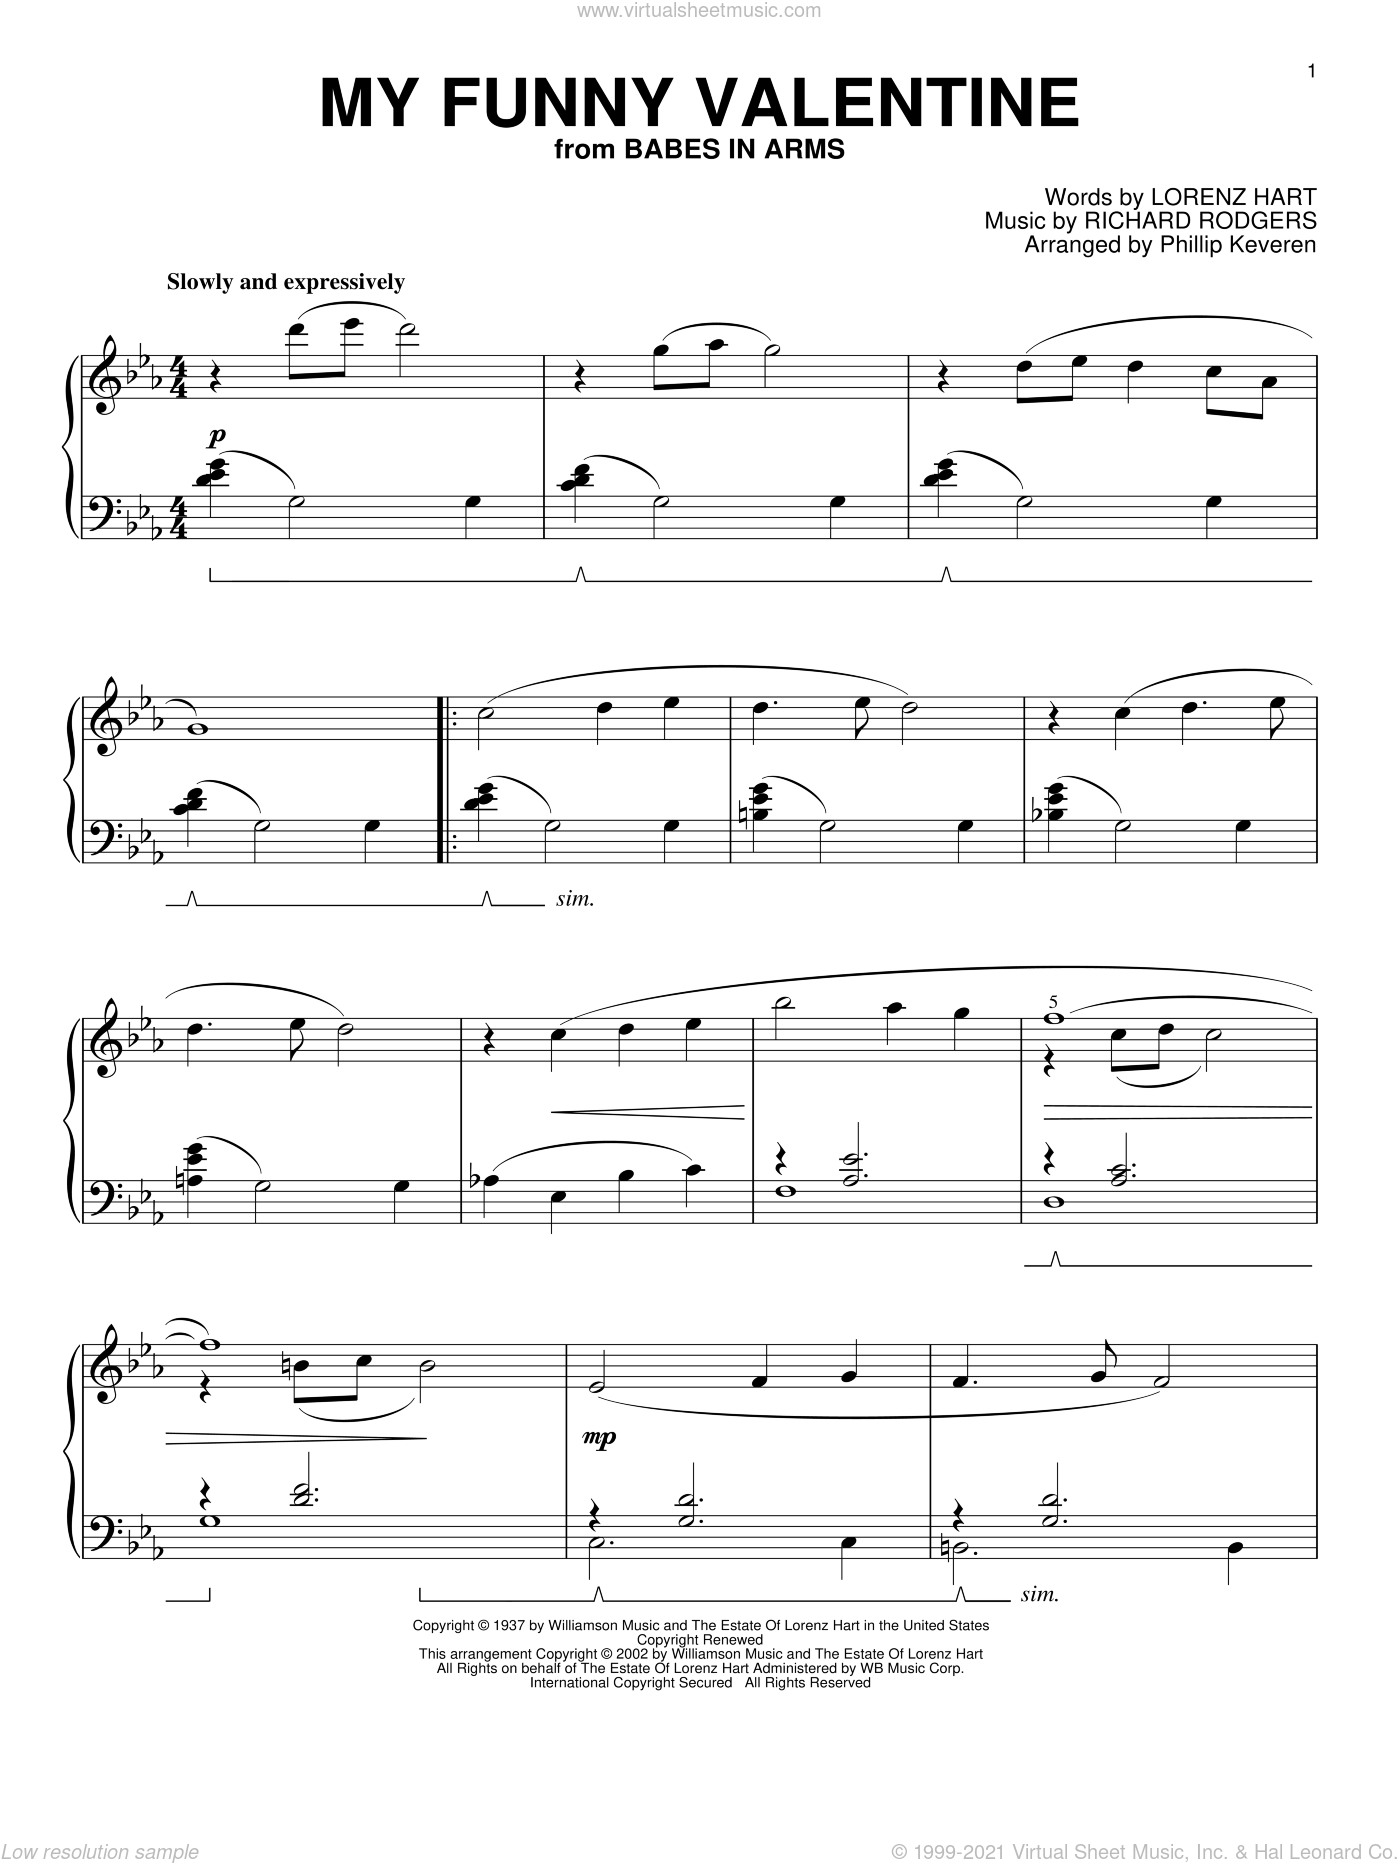 My Funny Valentine sheet music for piano solo by Richard Rodgers